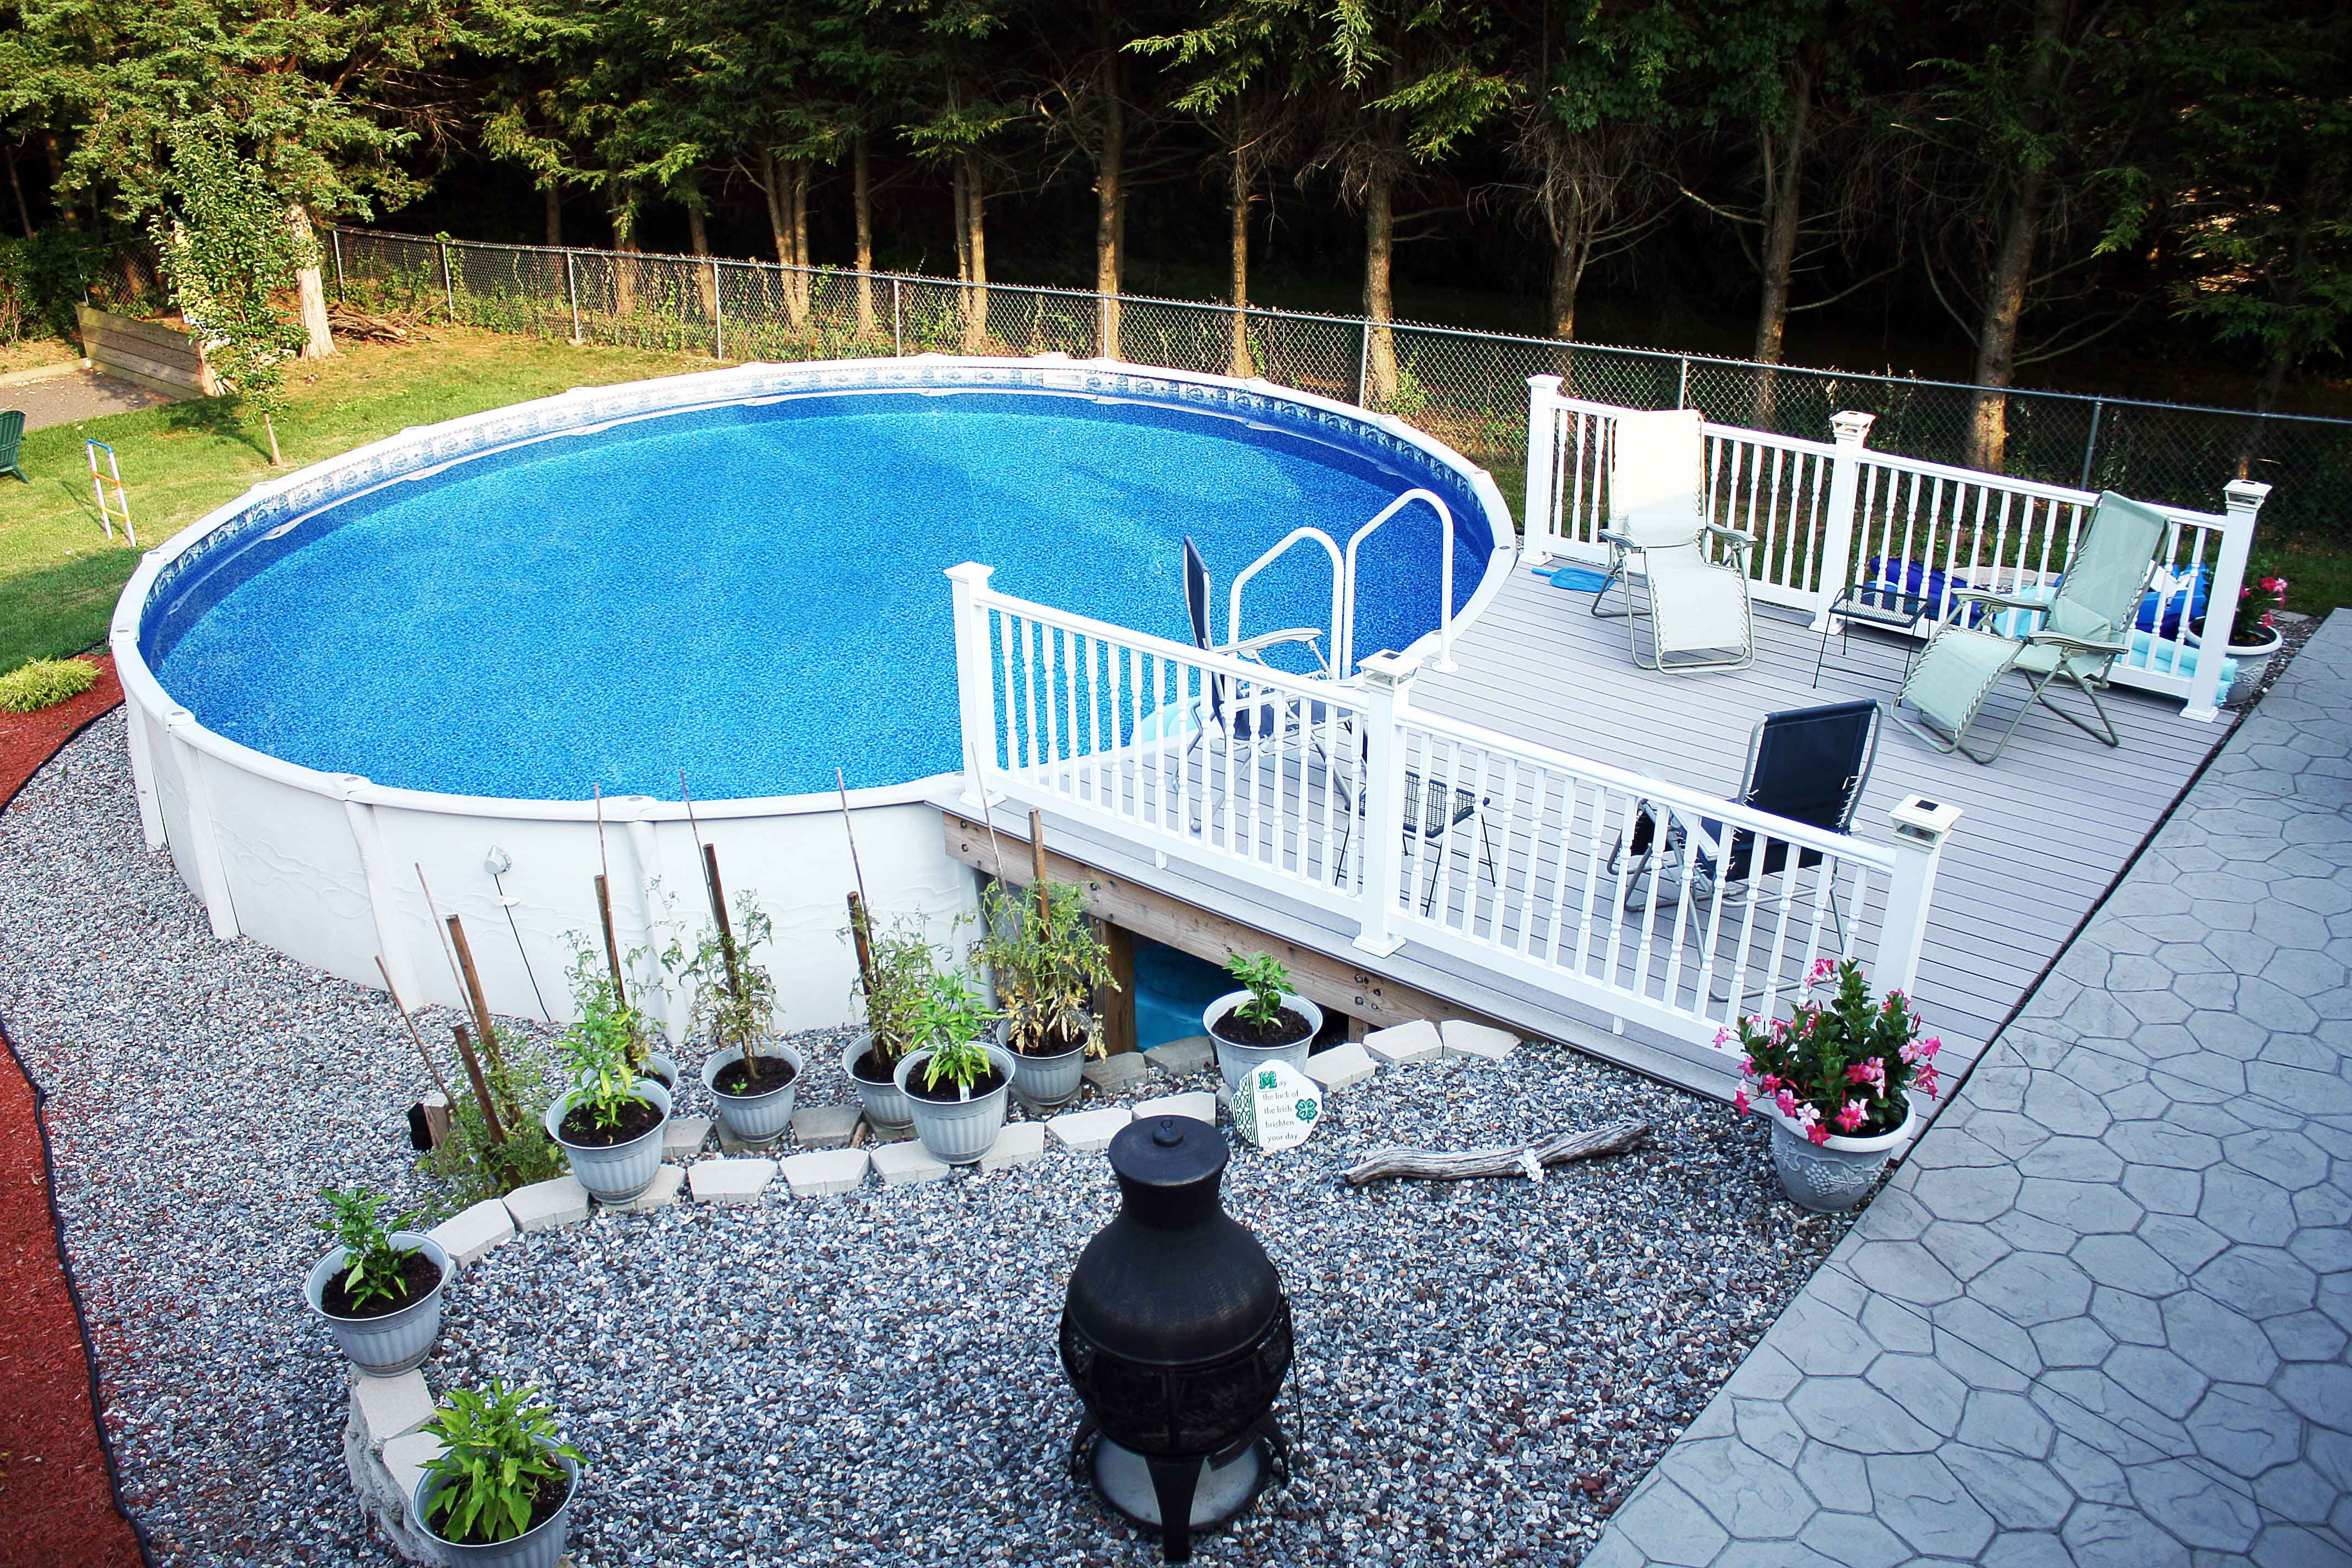 Backyard ideas with above ground pool - Admirable Pool Decks For Above Ground Pools With Outdoor Chaise Lounges Zero Gravity Chairs Also Outdoor